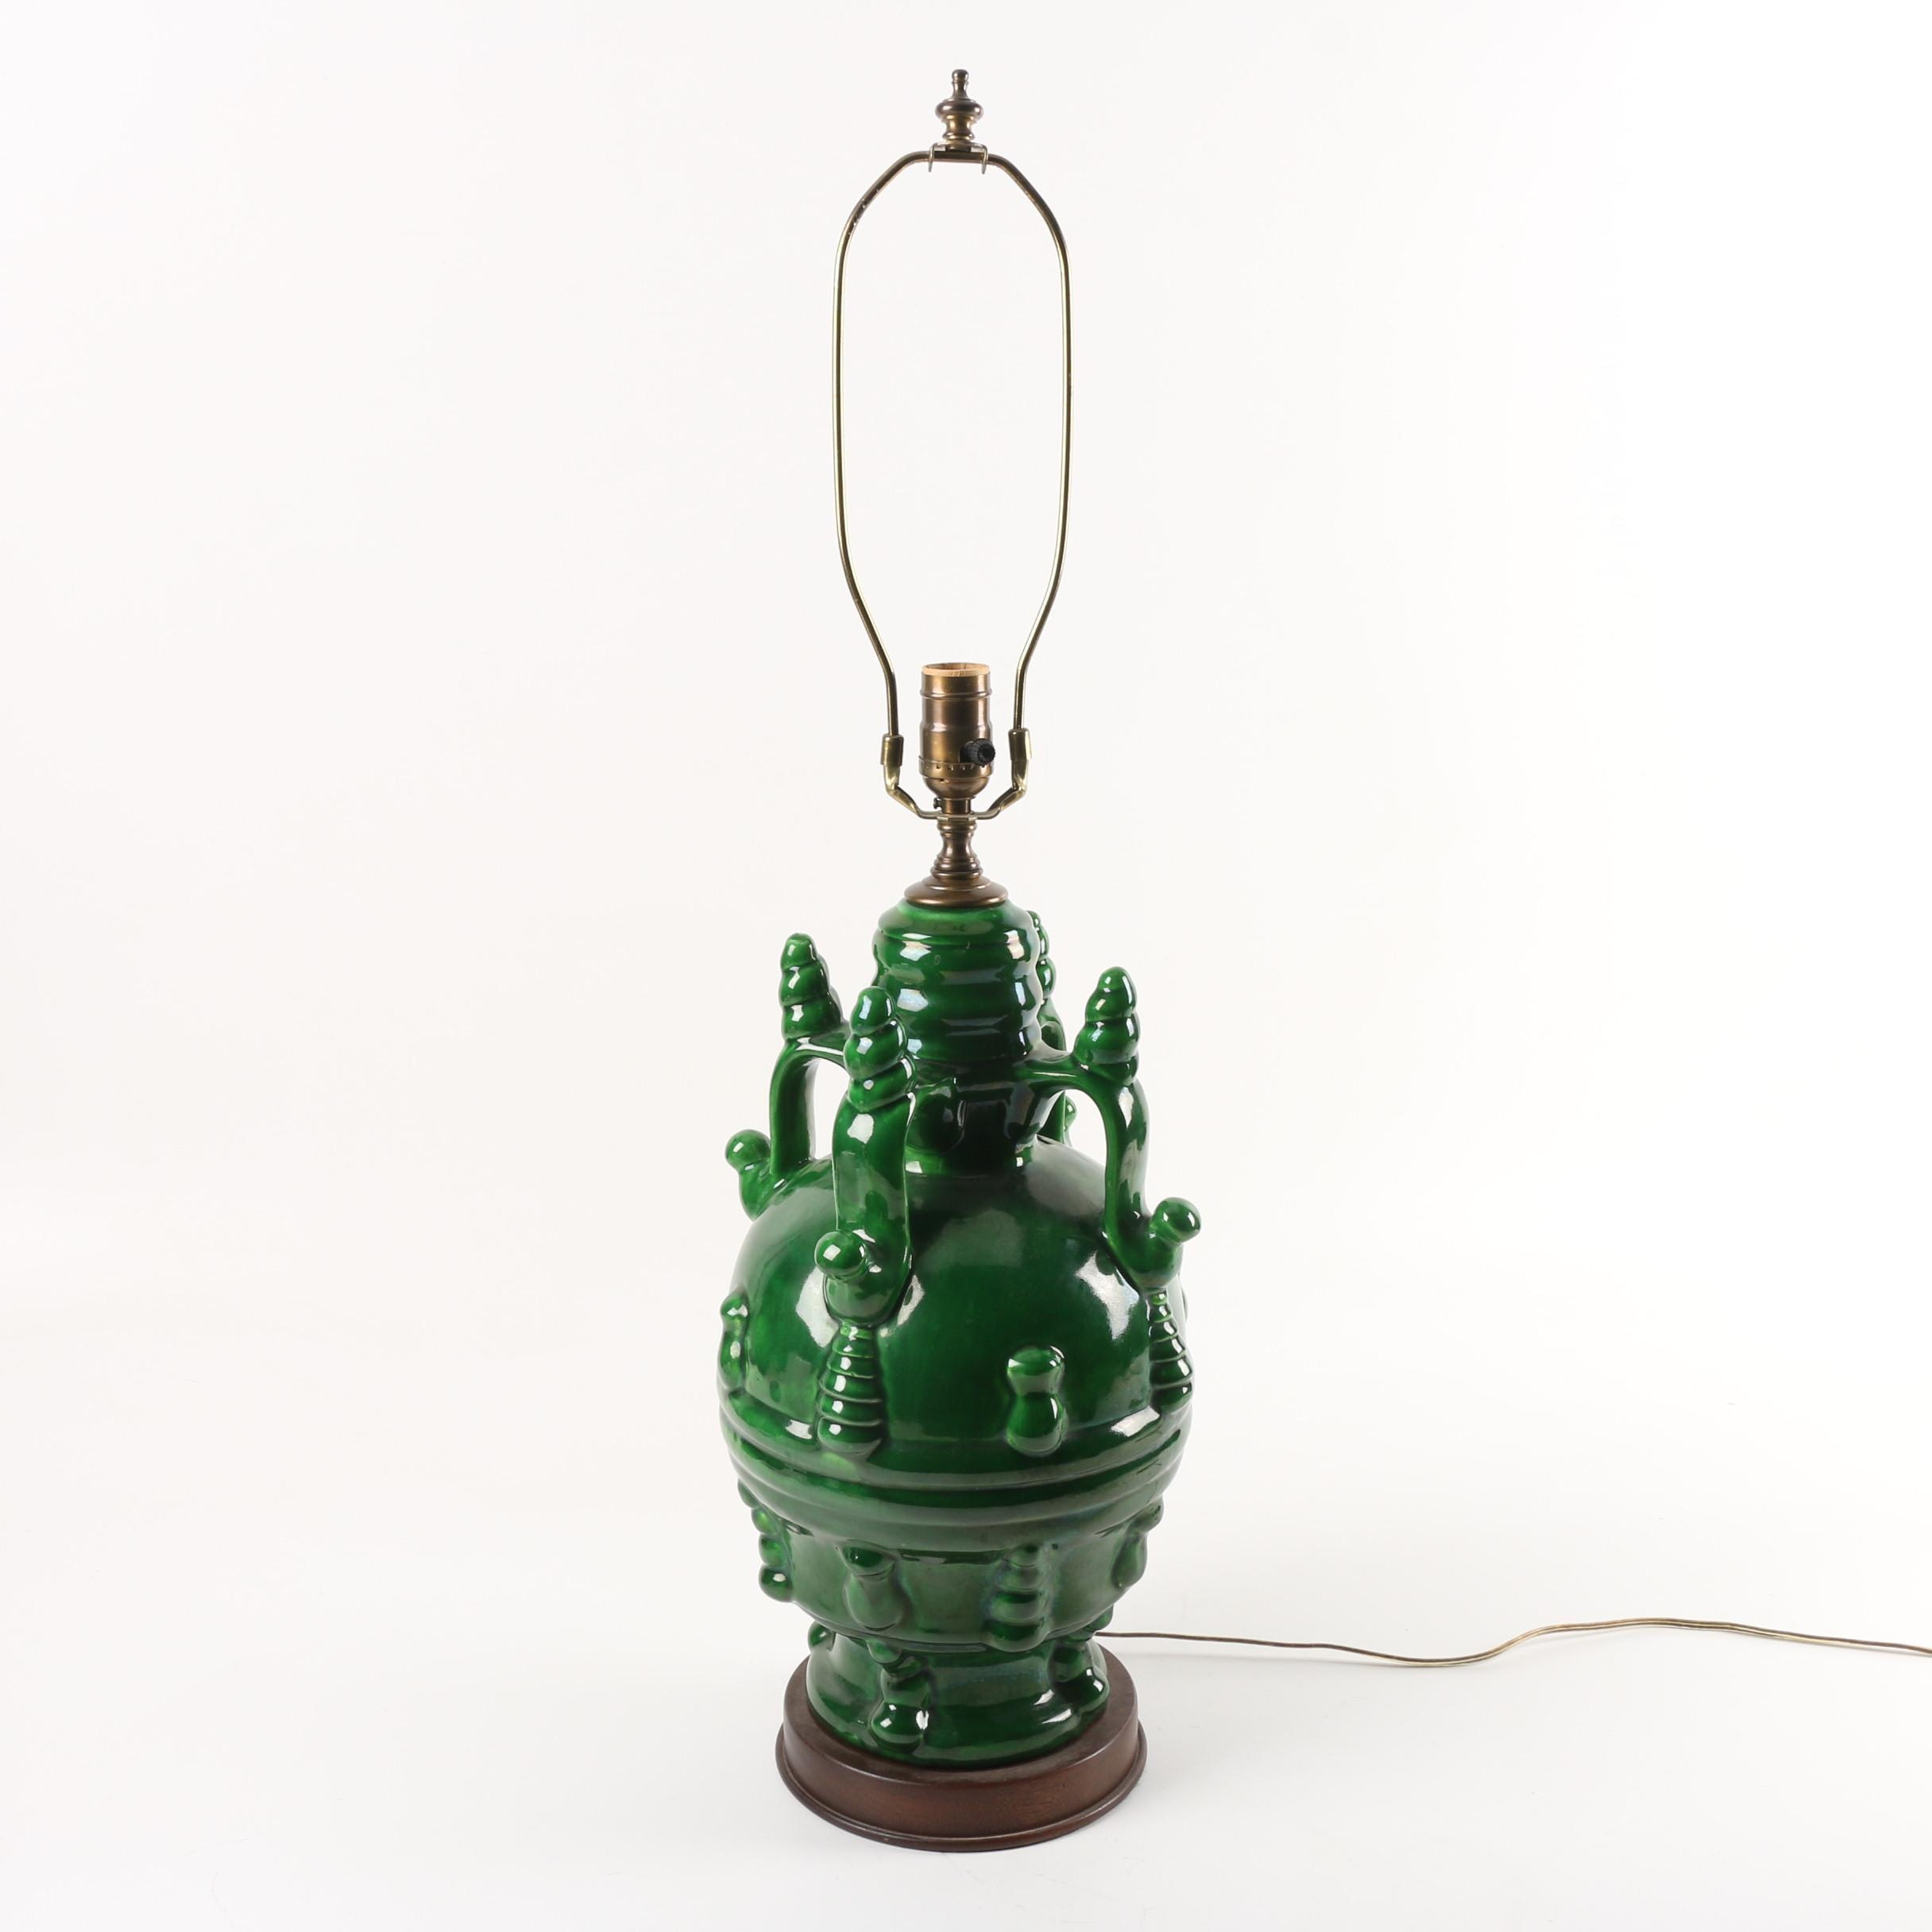 Iridescent Green Glazed Urn Shaped Table Lamp styled after Frederick Cooper